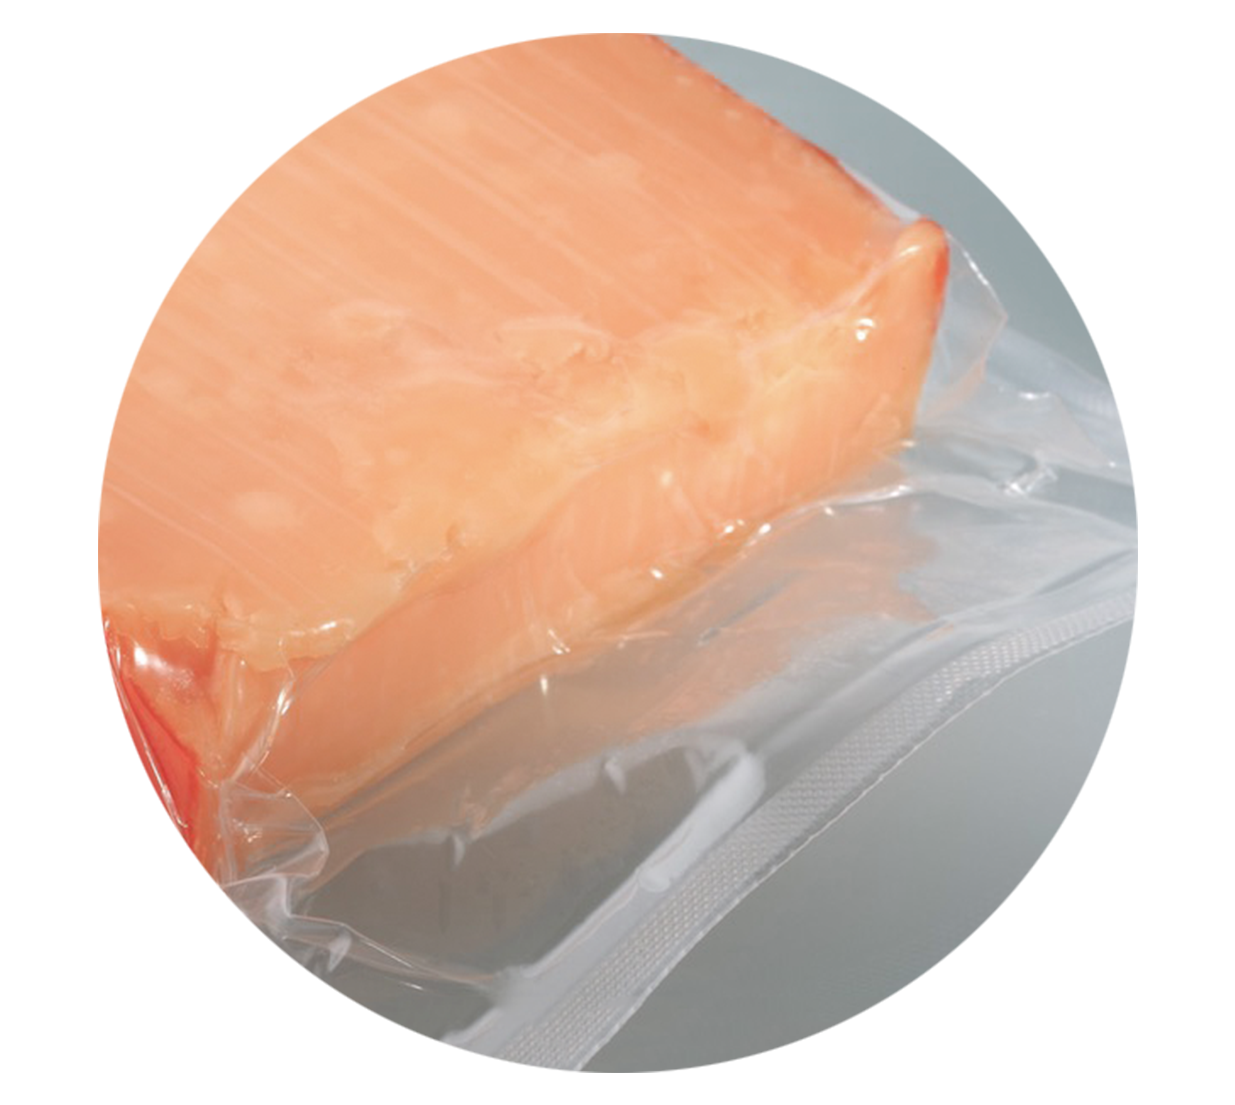 2017-07-10  Hybrid Coatings for Barrier Packaging   PACE supports the transition away from non-recyclable products, such as multi-layer barrier packaging. Together with our partners, we are now developing barrier applications based on hybrid sol-gel coatings.   Contact us  for collaboration opportunities